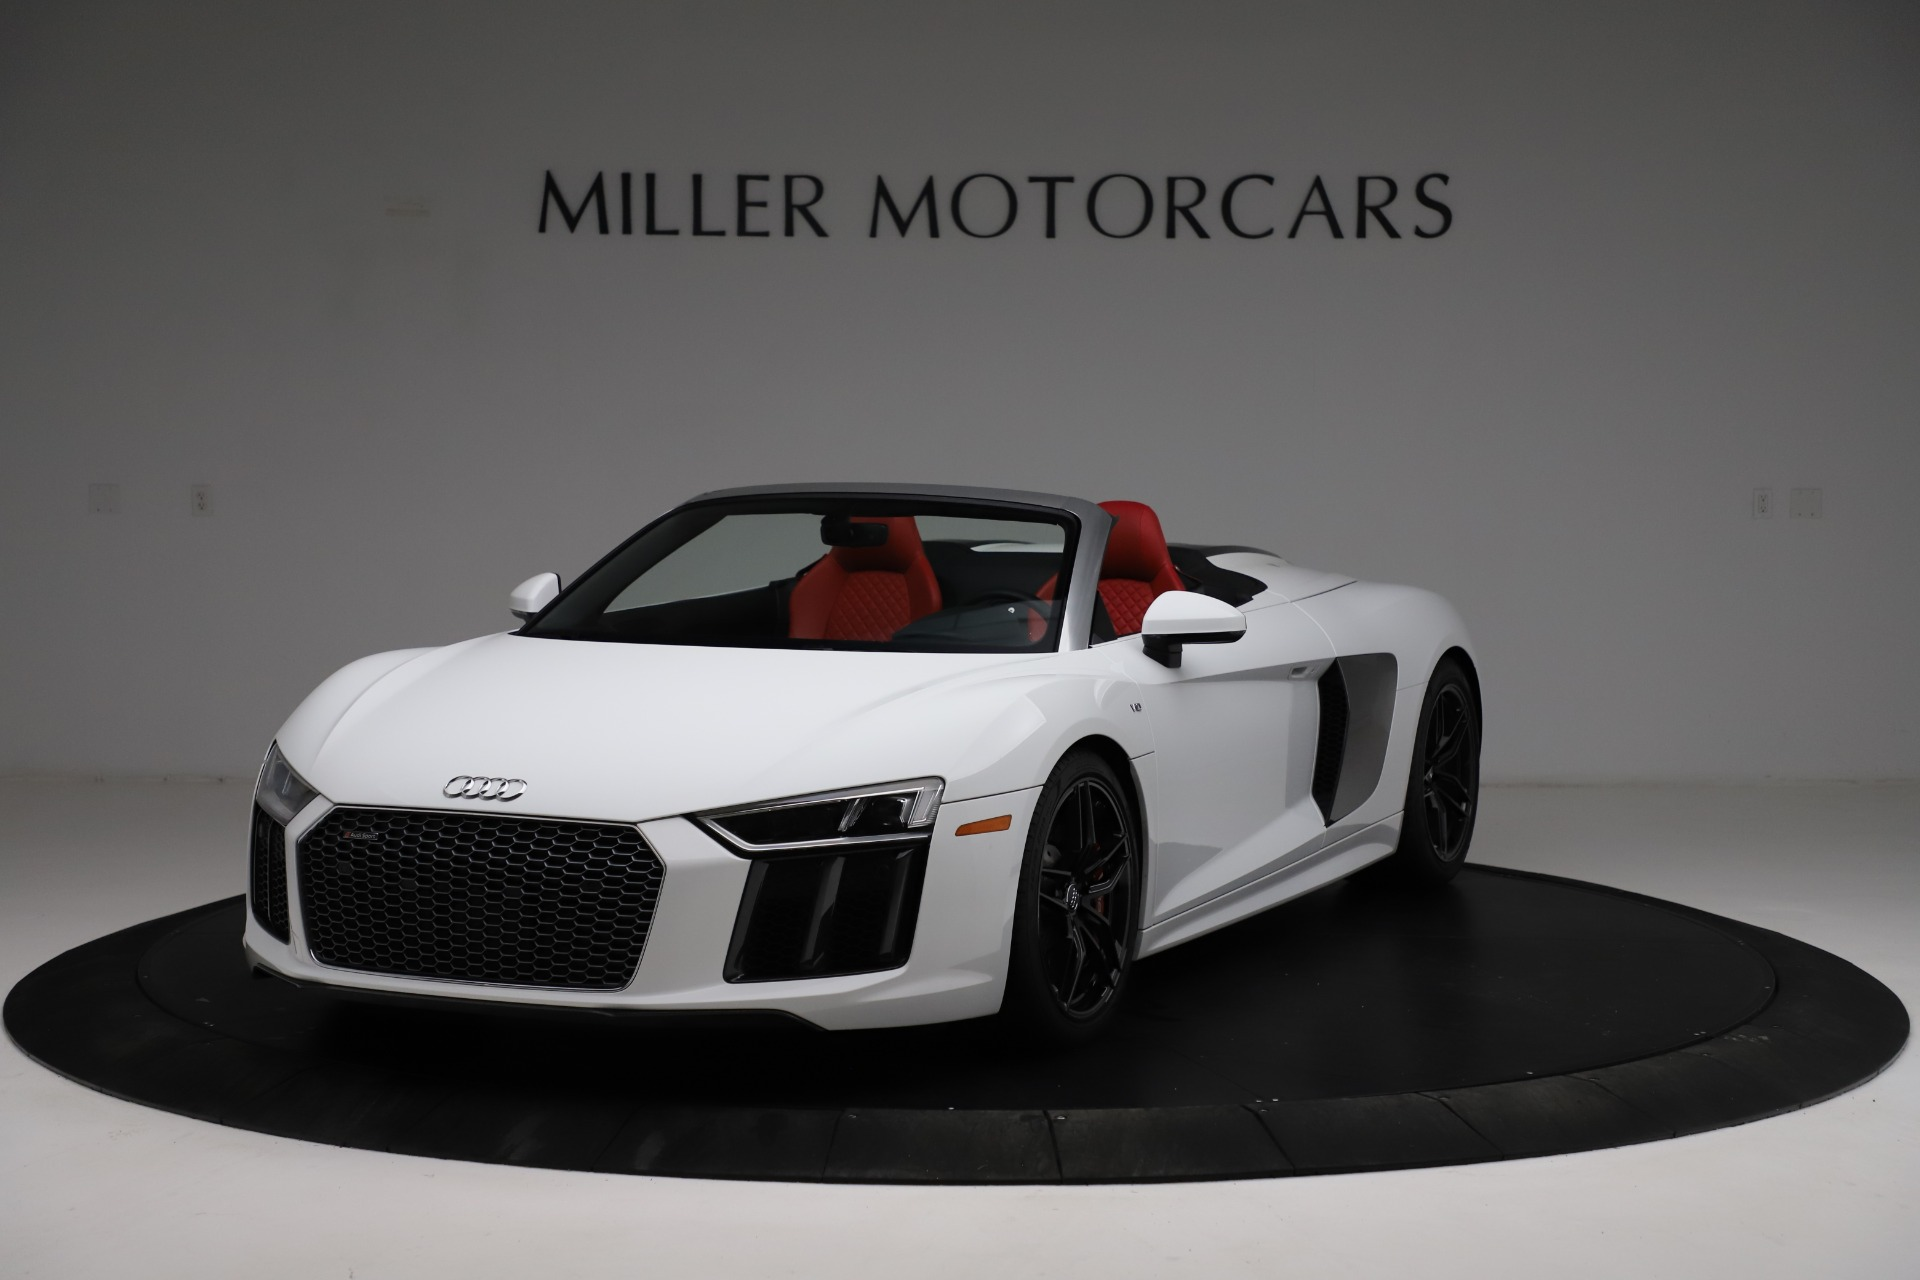 Used 2018 Audi R8 Spyder for sale $154,900 at Maserati of Greenwich in Greenwich CT 06830 1